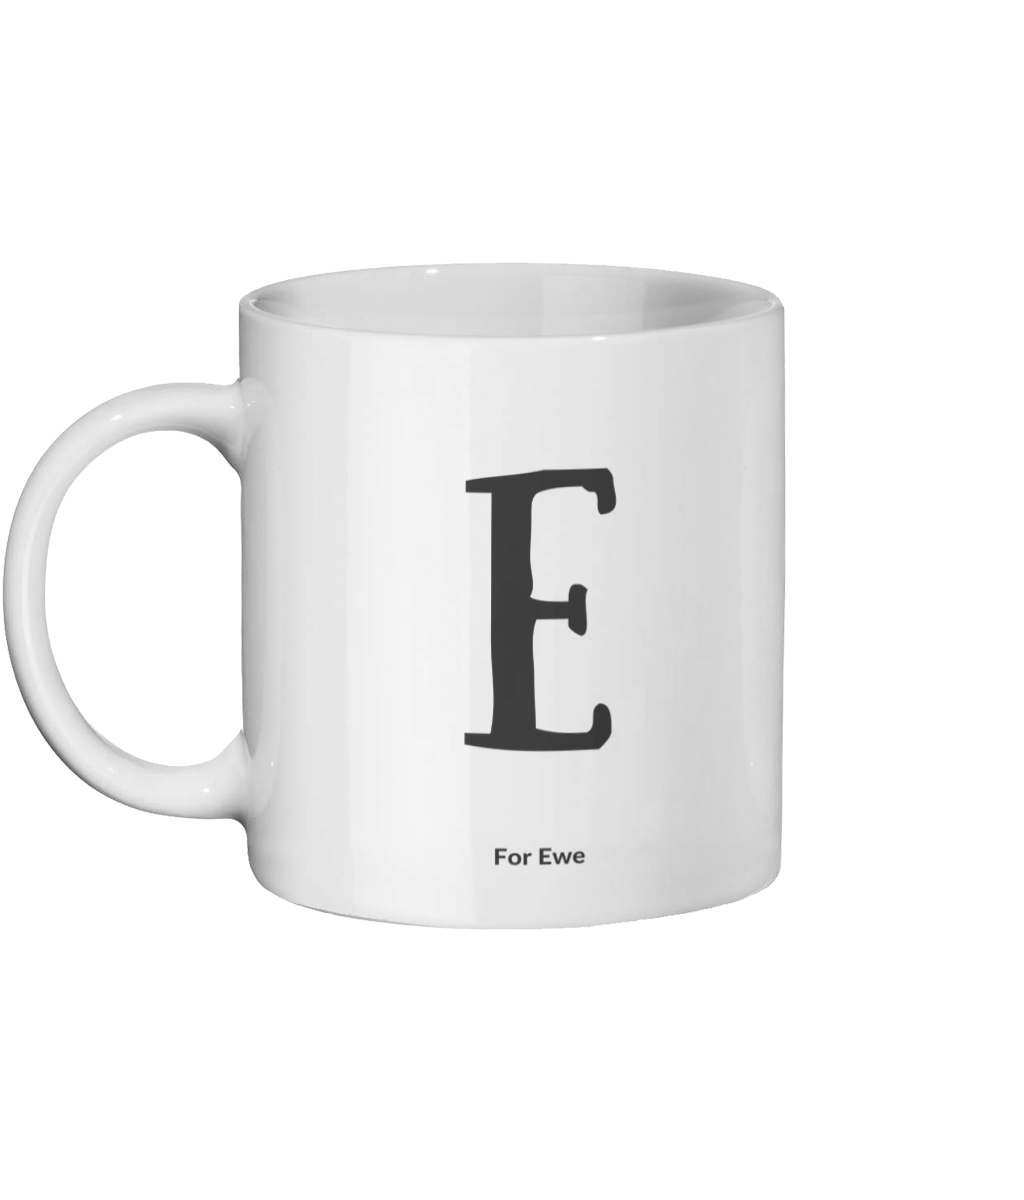 E for Ewe Mug Left-side